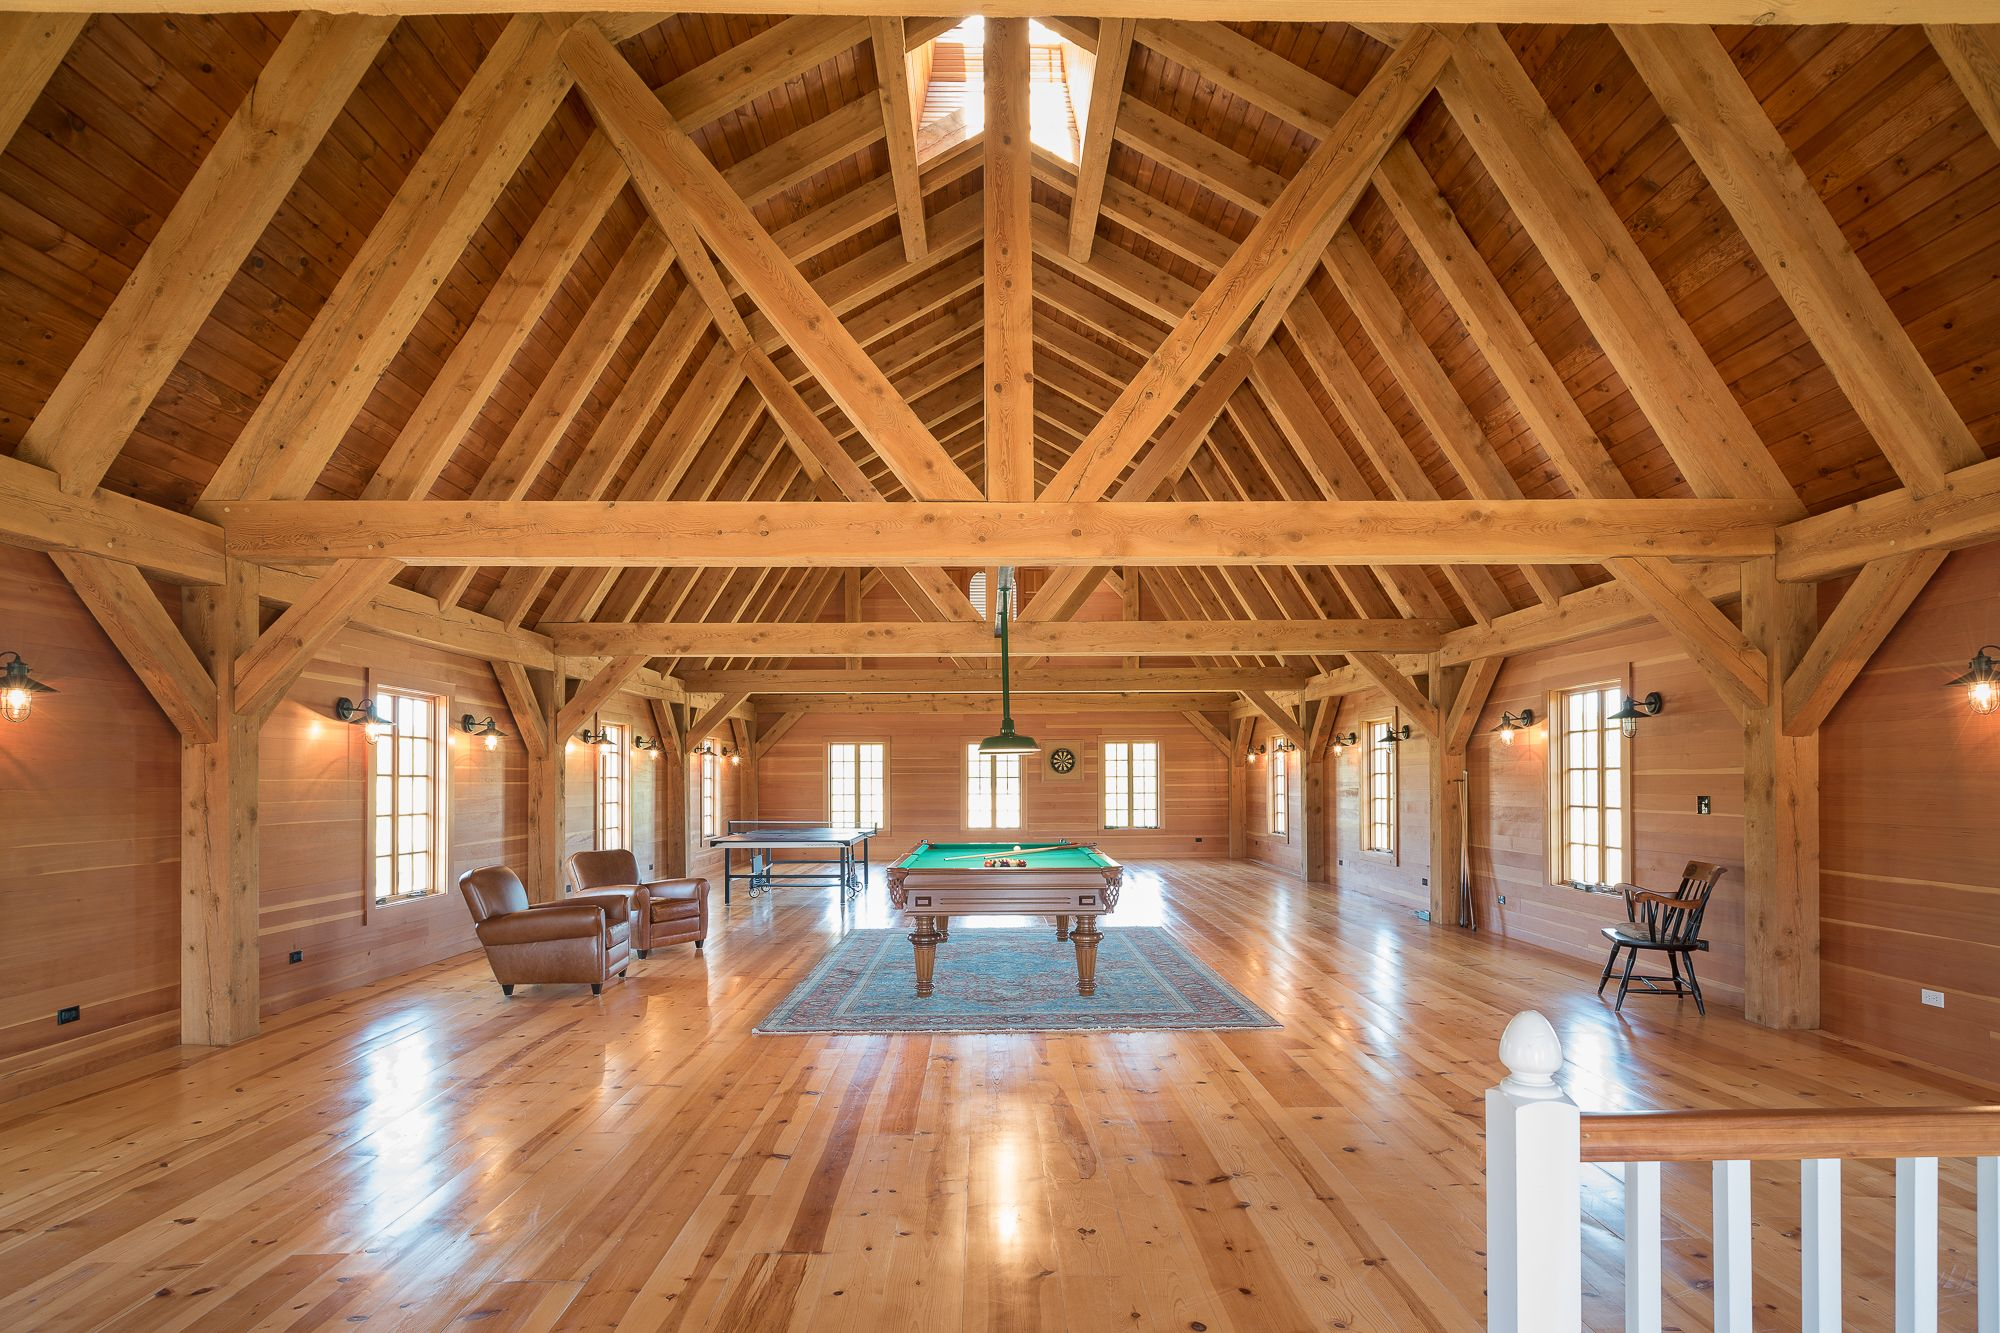 Gambrel barn frame post beam construction abodes for Barn roof plans